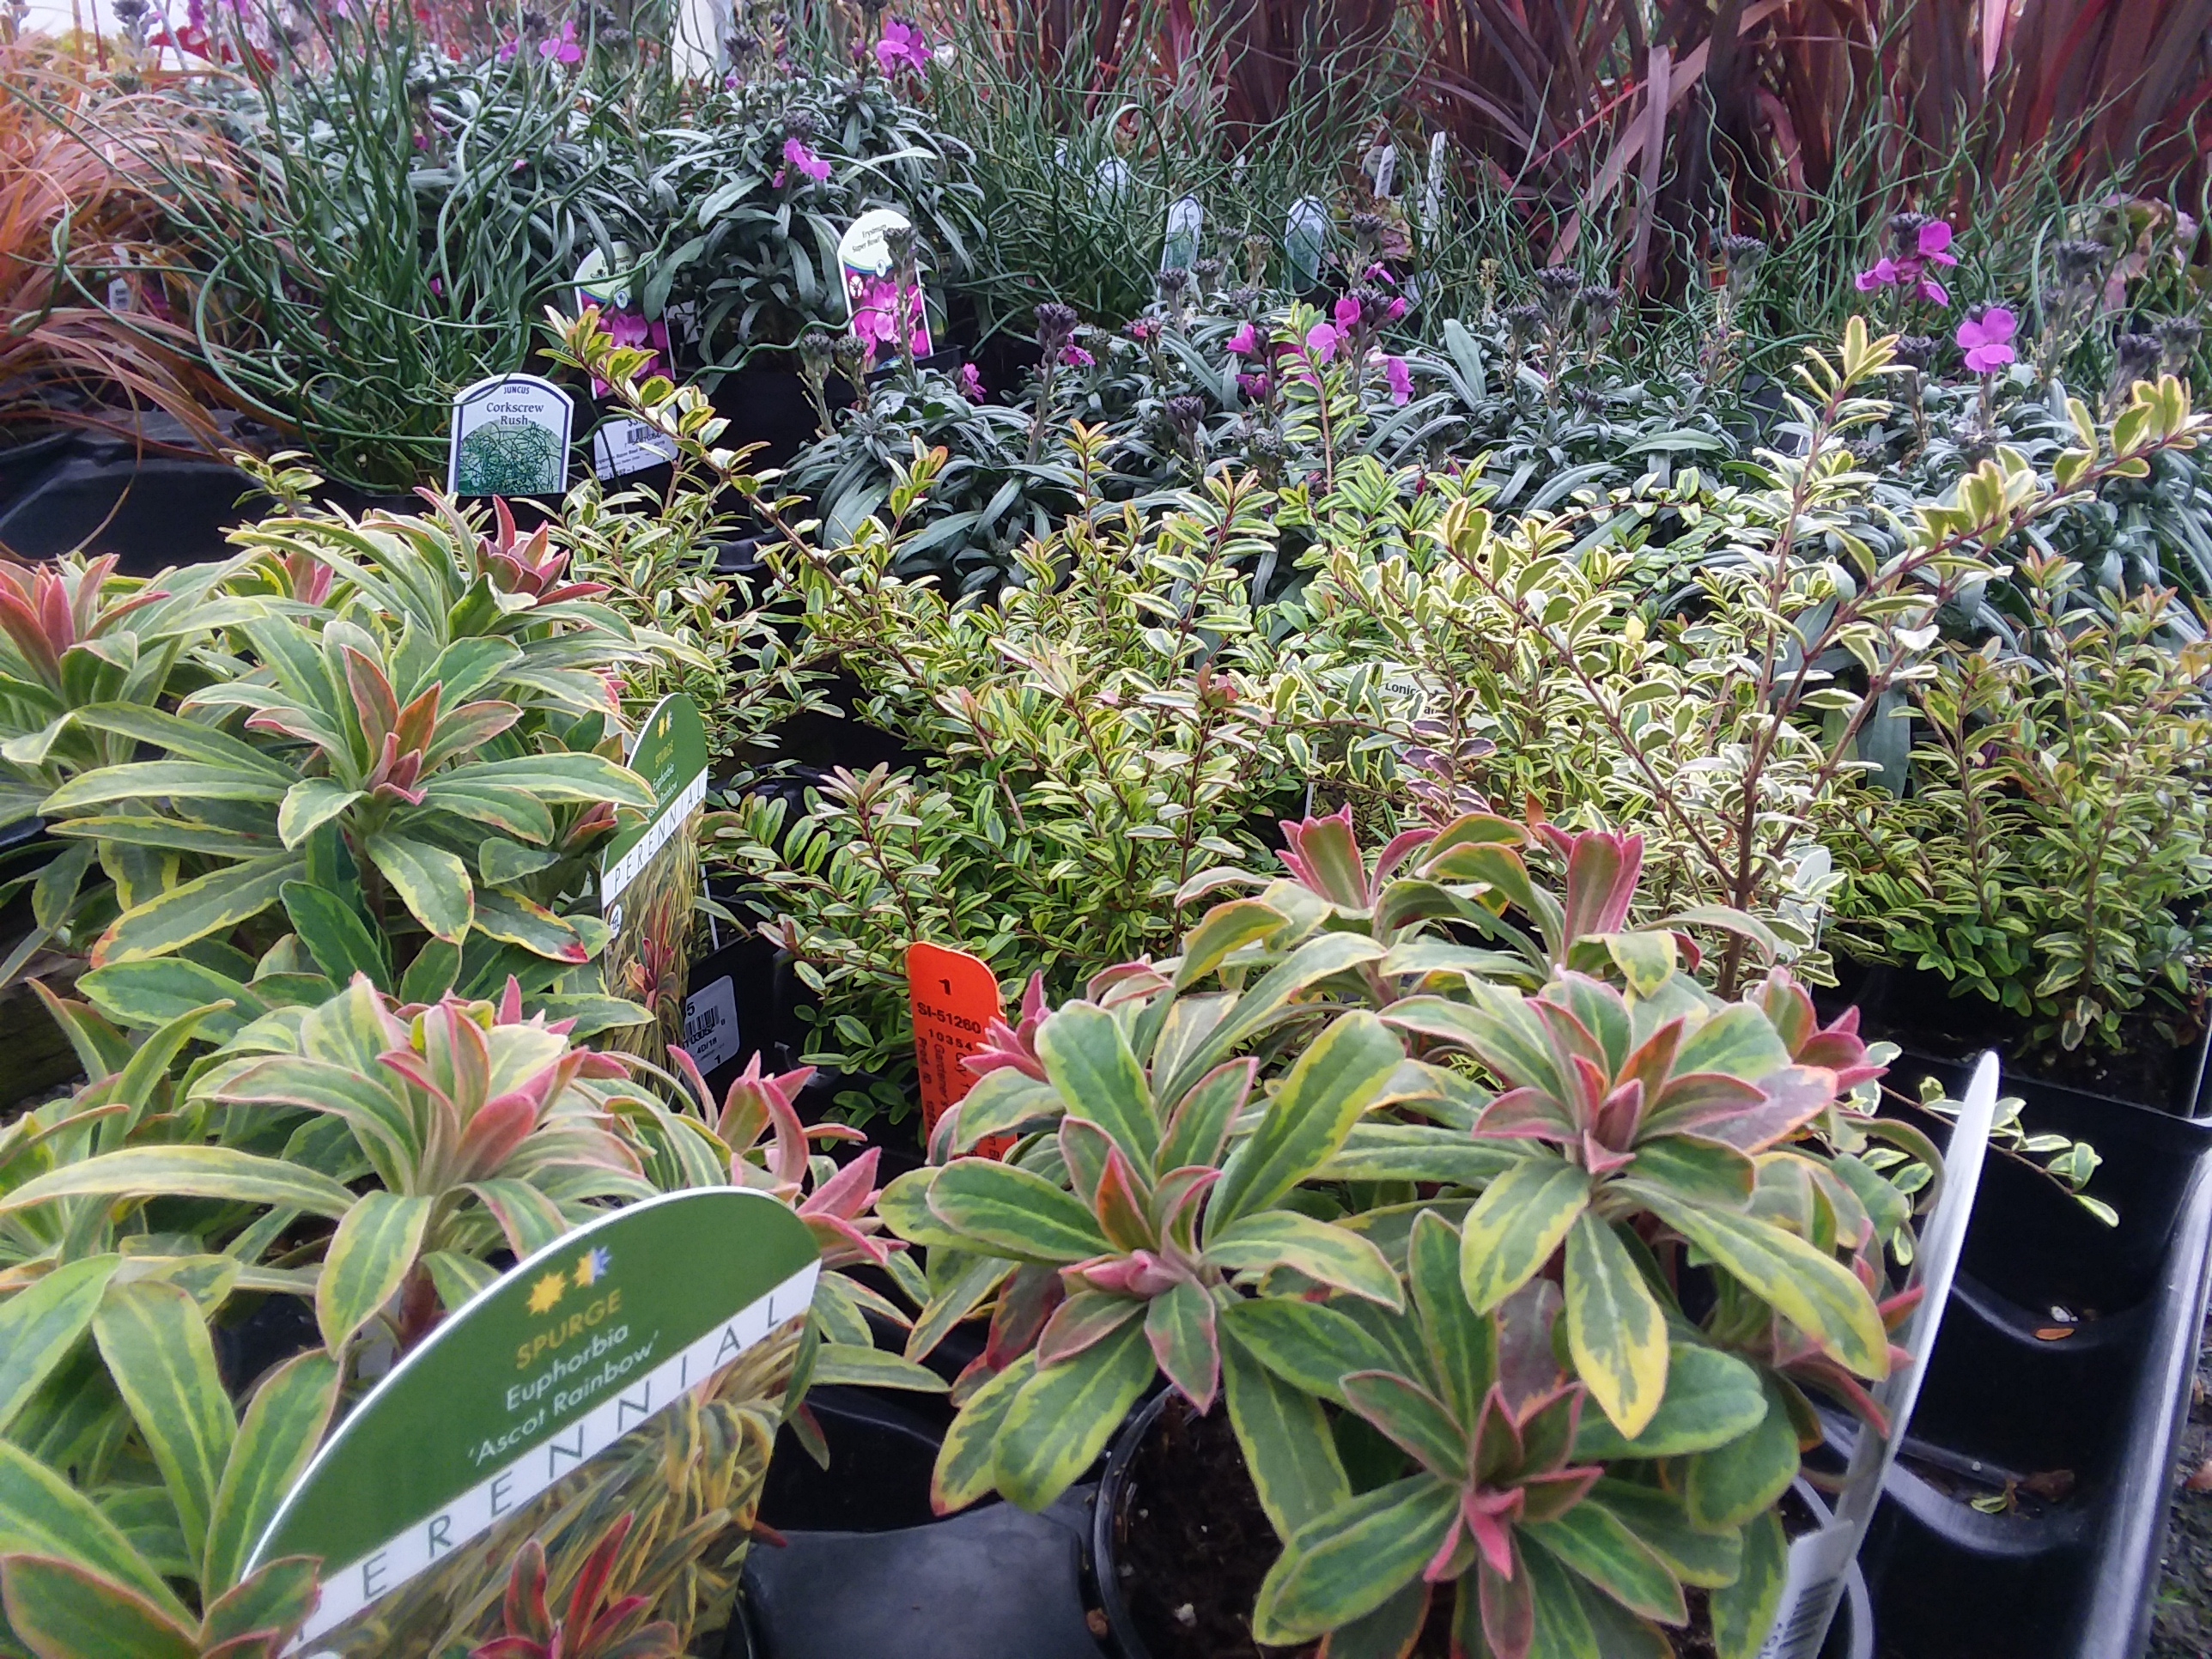 Perennials for winter garden interest